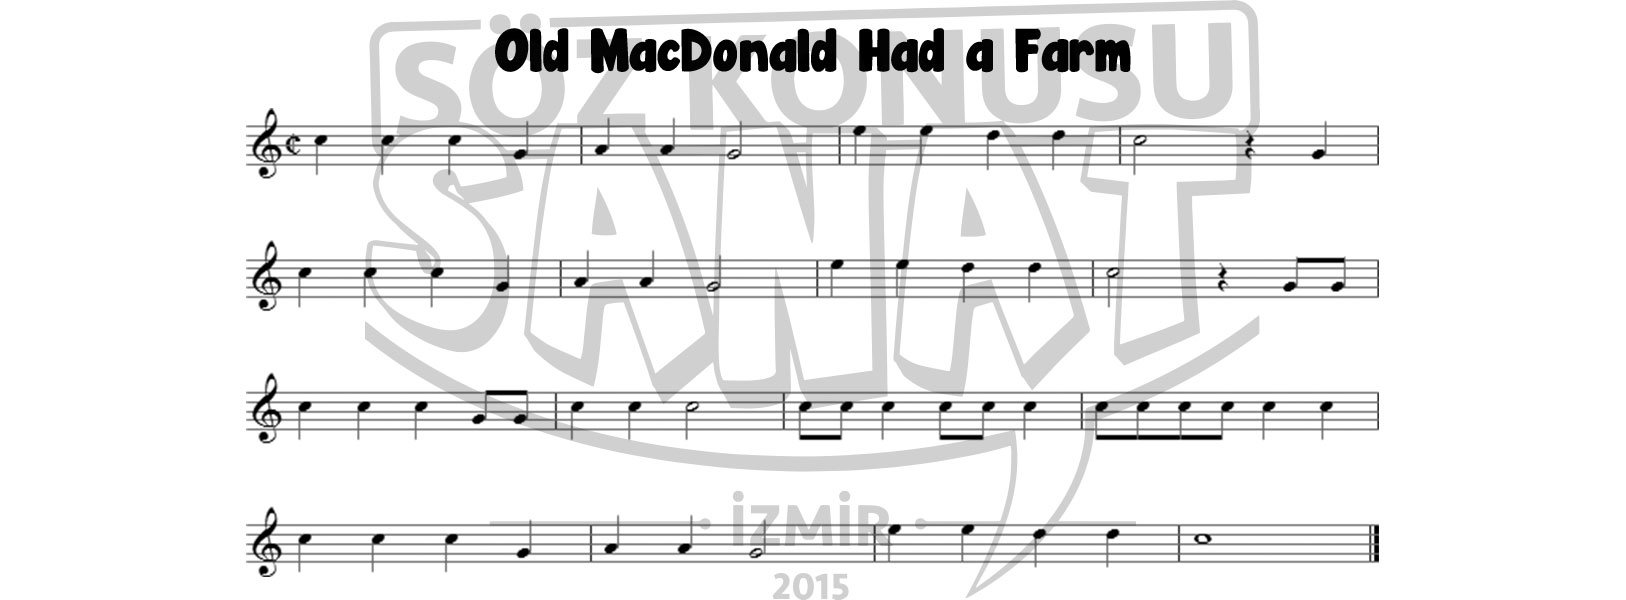 old-macdonald-had-a-farm-keman-notası